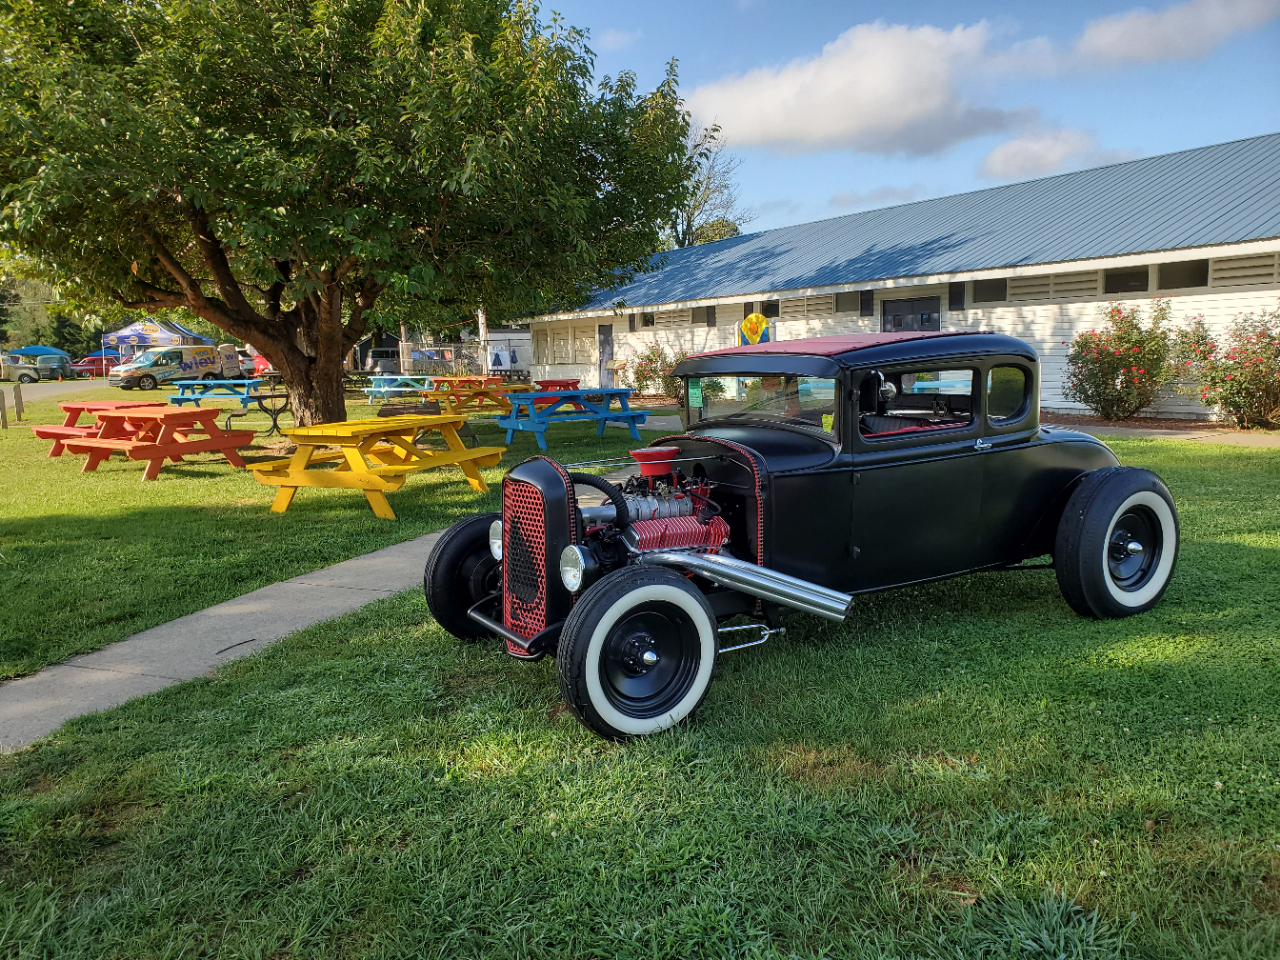 Dave's Model A